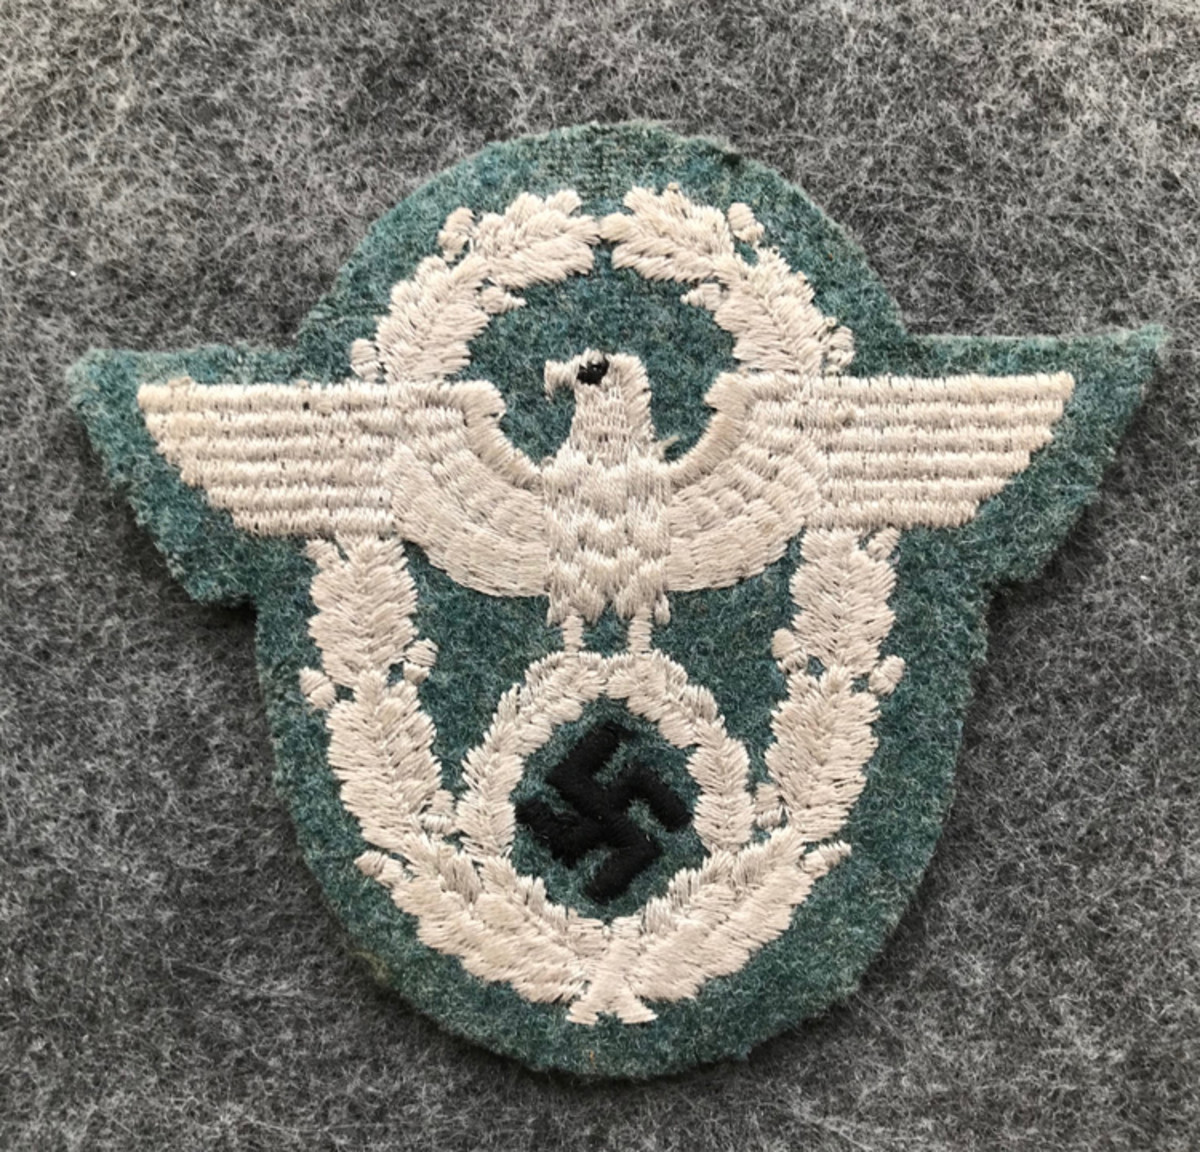 A German Enlisted Ordnungspolizei/Police Administration sleeve eagle. This type of police patch is constructed with a machine embroidered silver/grey eagle with a black swastika sewn on green wool cloth. This type of police patch retails for around $50-$70.